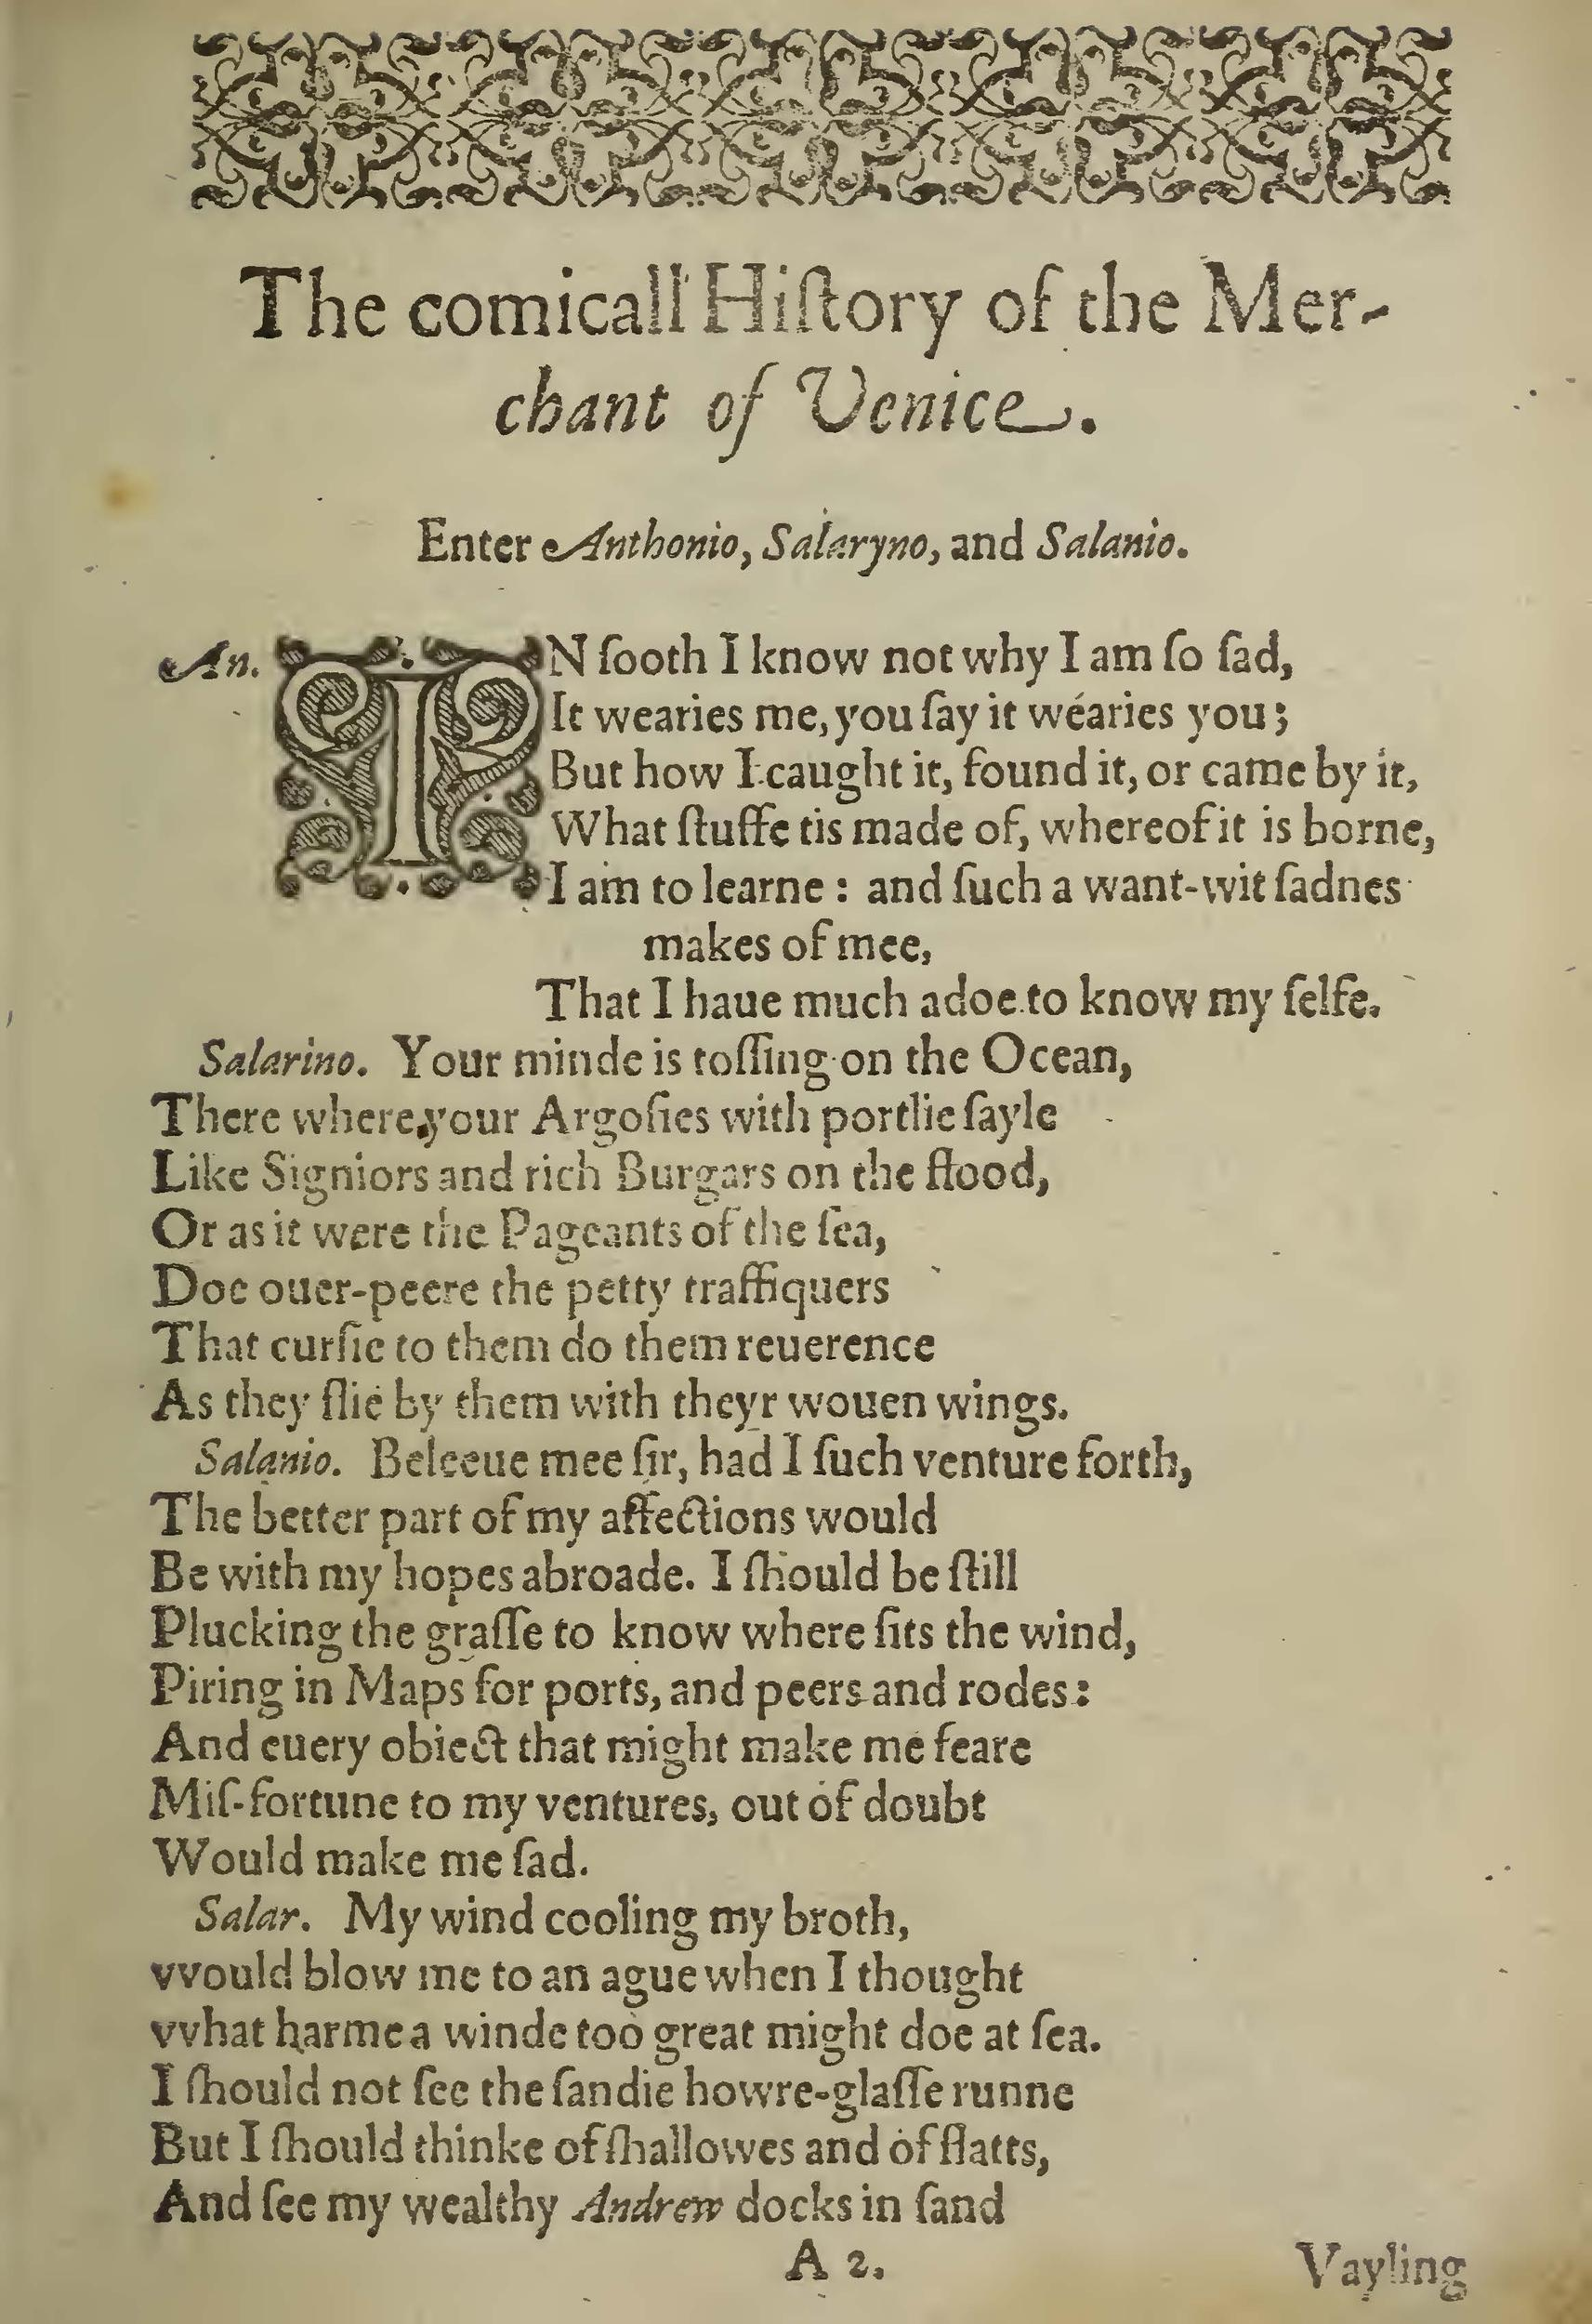 essays on the merchant of venice merchant of venice essay ideas  the merchant of venice quotes web of notes from the merchant of venice quarto 1 boston